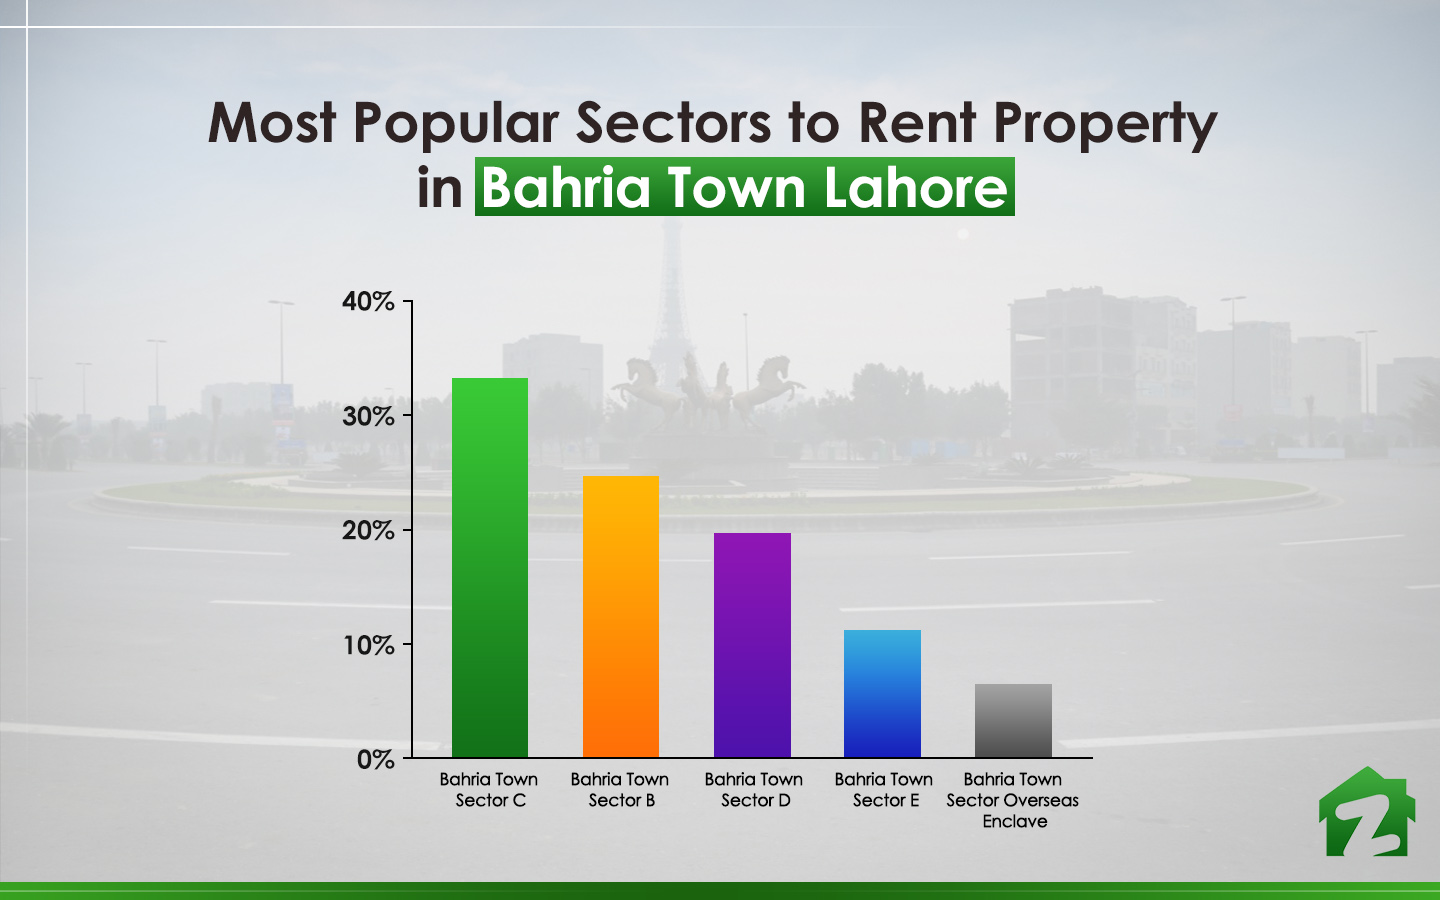 popular sectors of Bahria Town Lahore